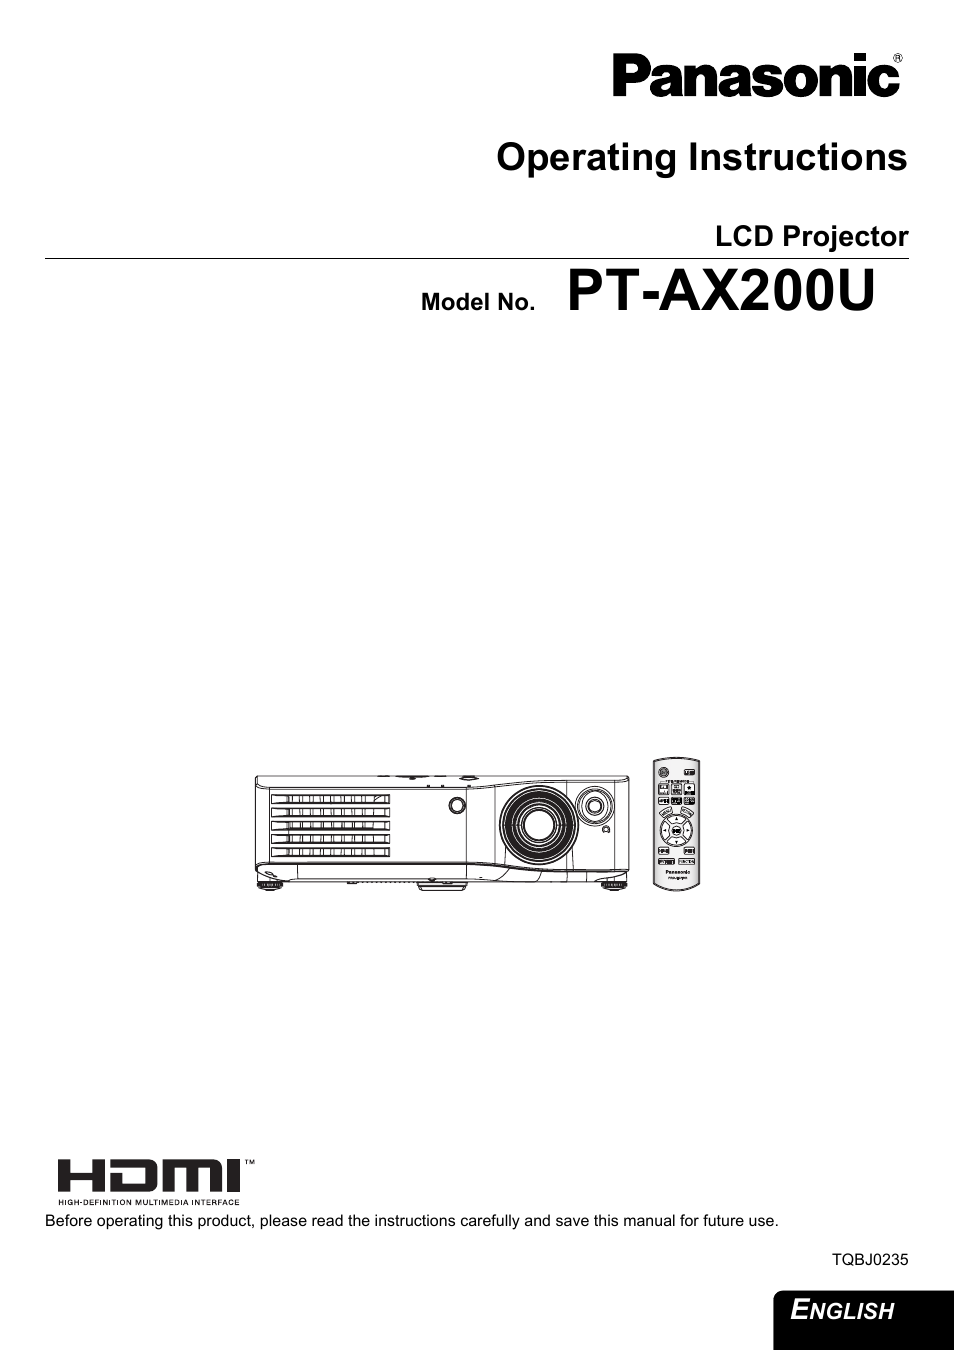 panasonic pt ax200u user manual 54 pages rh manualsdir com Panasonic Technical Support panasonic pt-ax200u manual